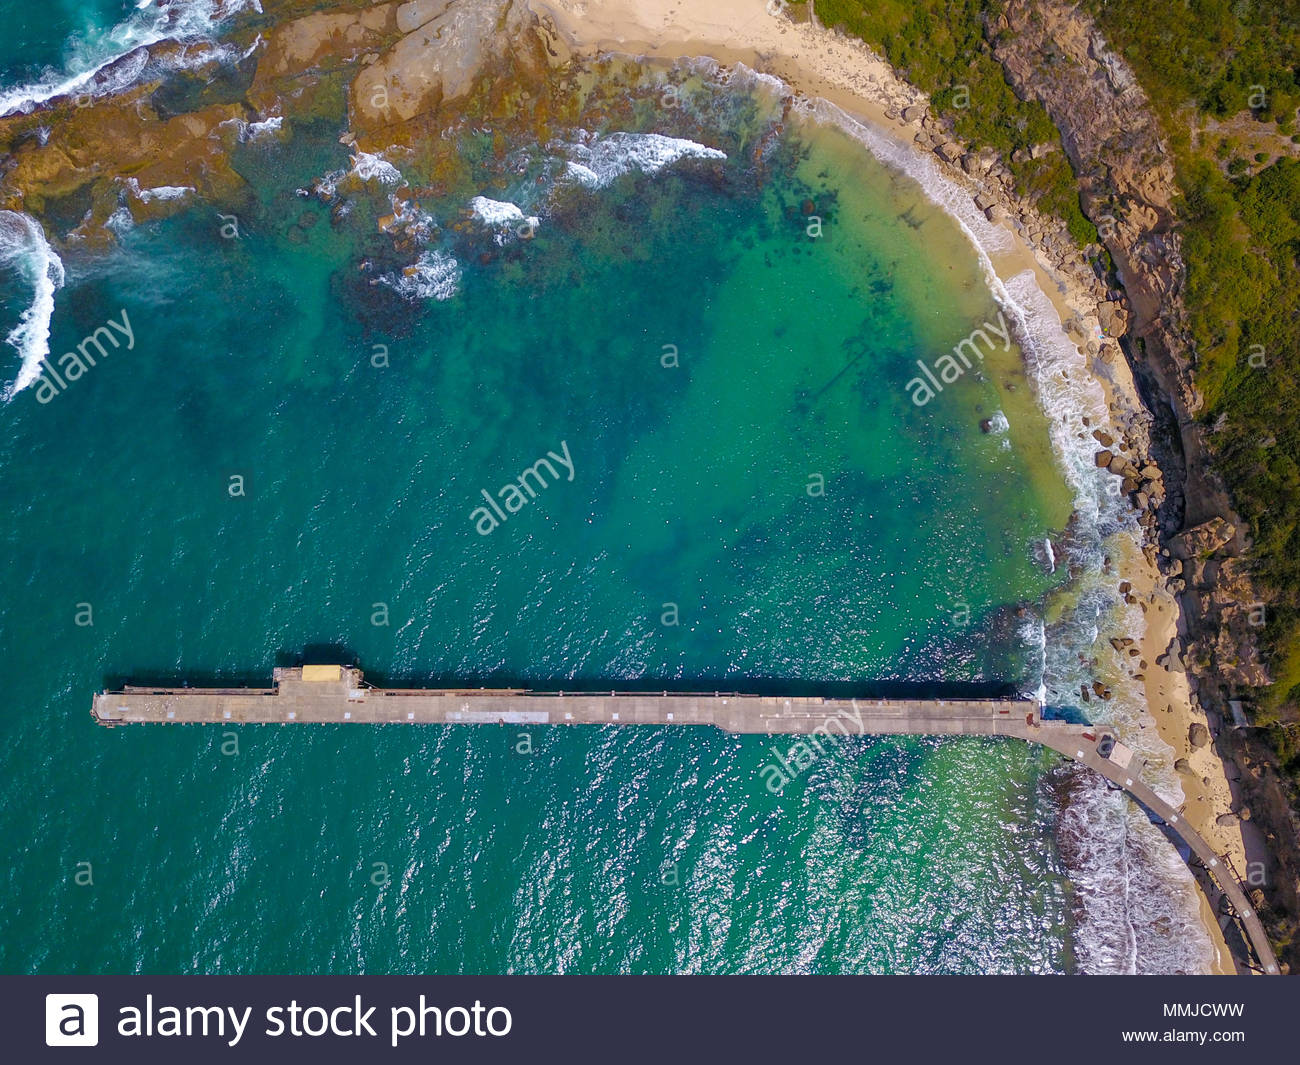 Aerial view of the historic coal loader jettry at Catherine Hill Bay, New South Wales, Australia - Stock Image